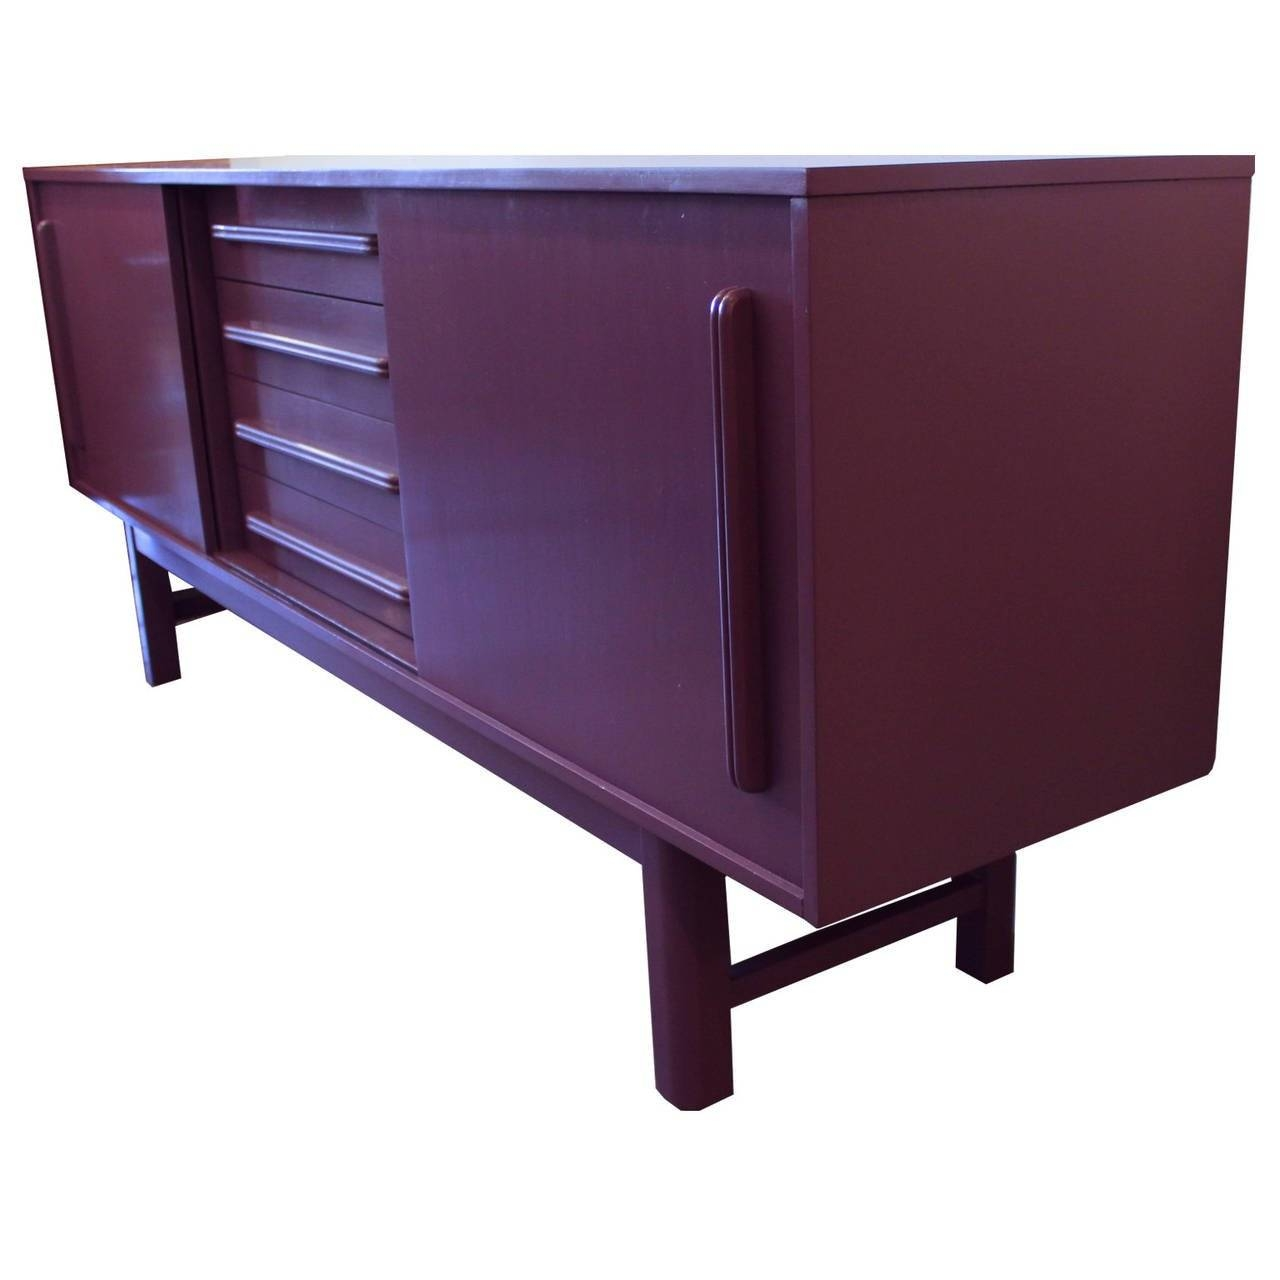 Purple Credenza Images - Reverse Search throughout Purple Sideboards (Image 20 of 30)